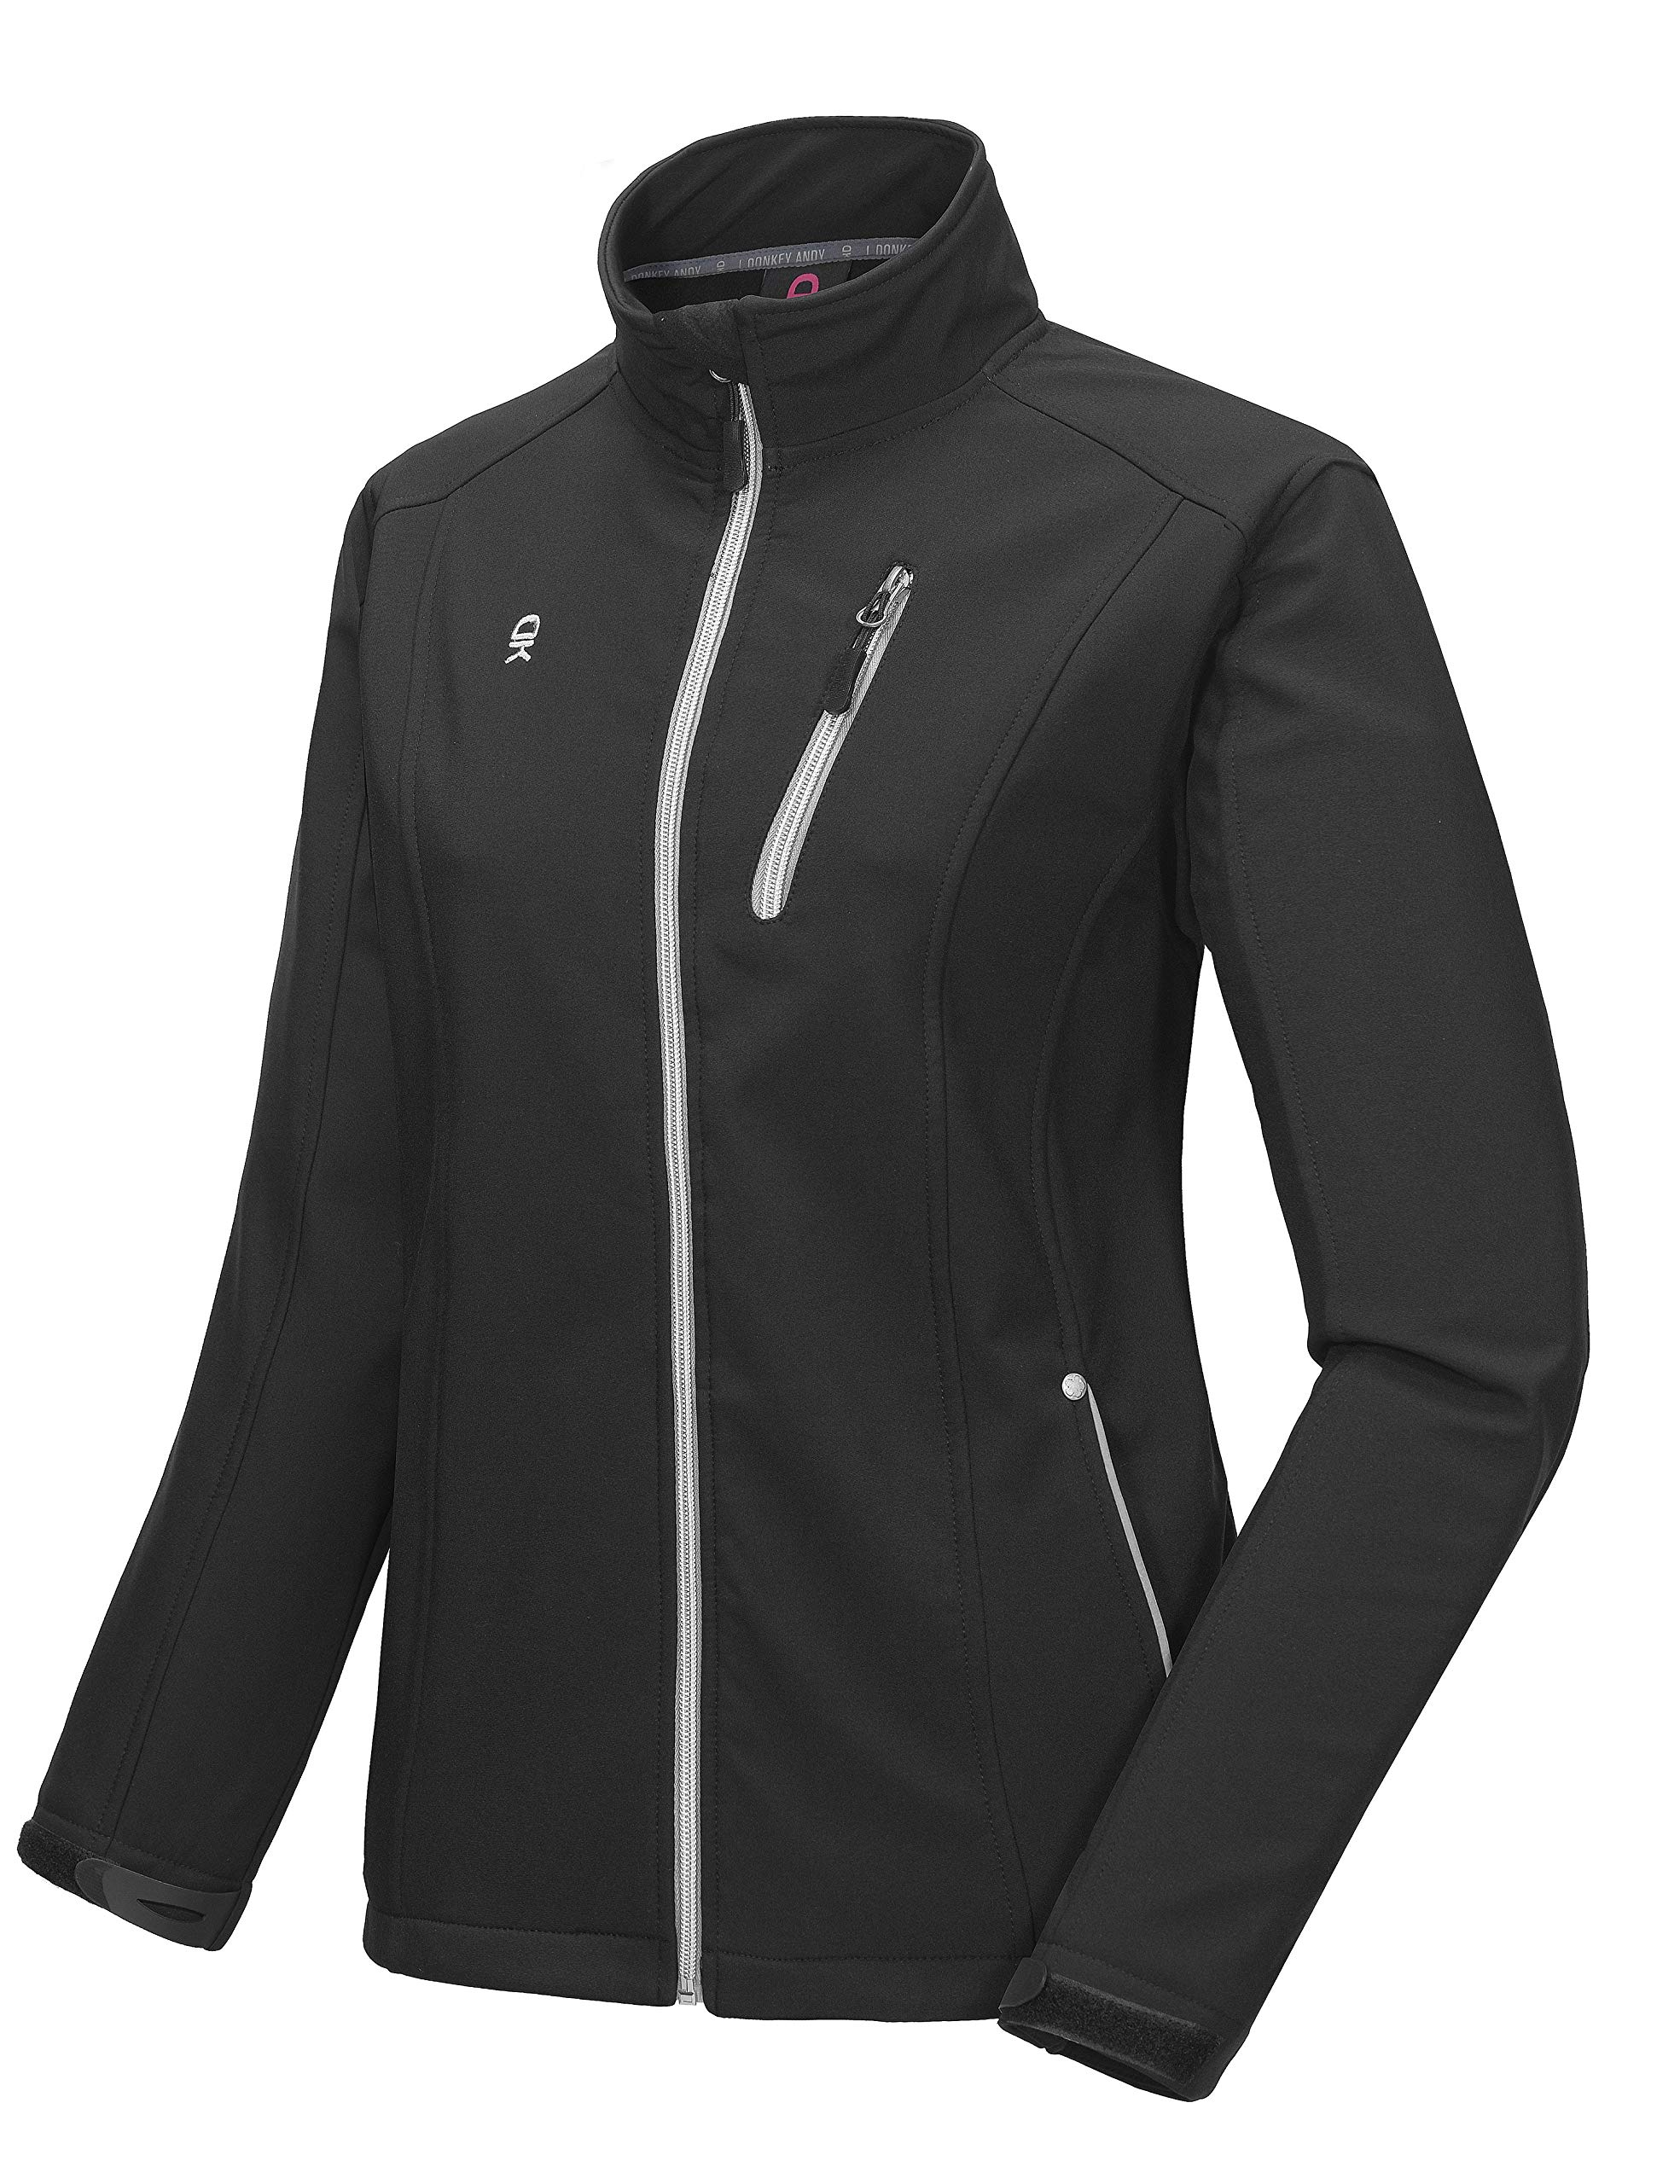 Little Donkey Andy Women's Softshell Jacket, Fleece Lined and Water Repellent Black Size L by Little Donkey Andy